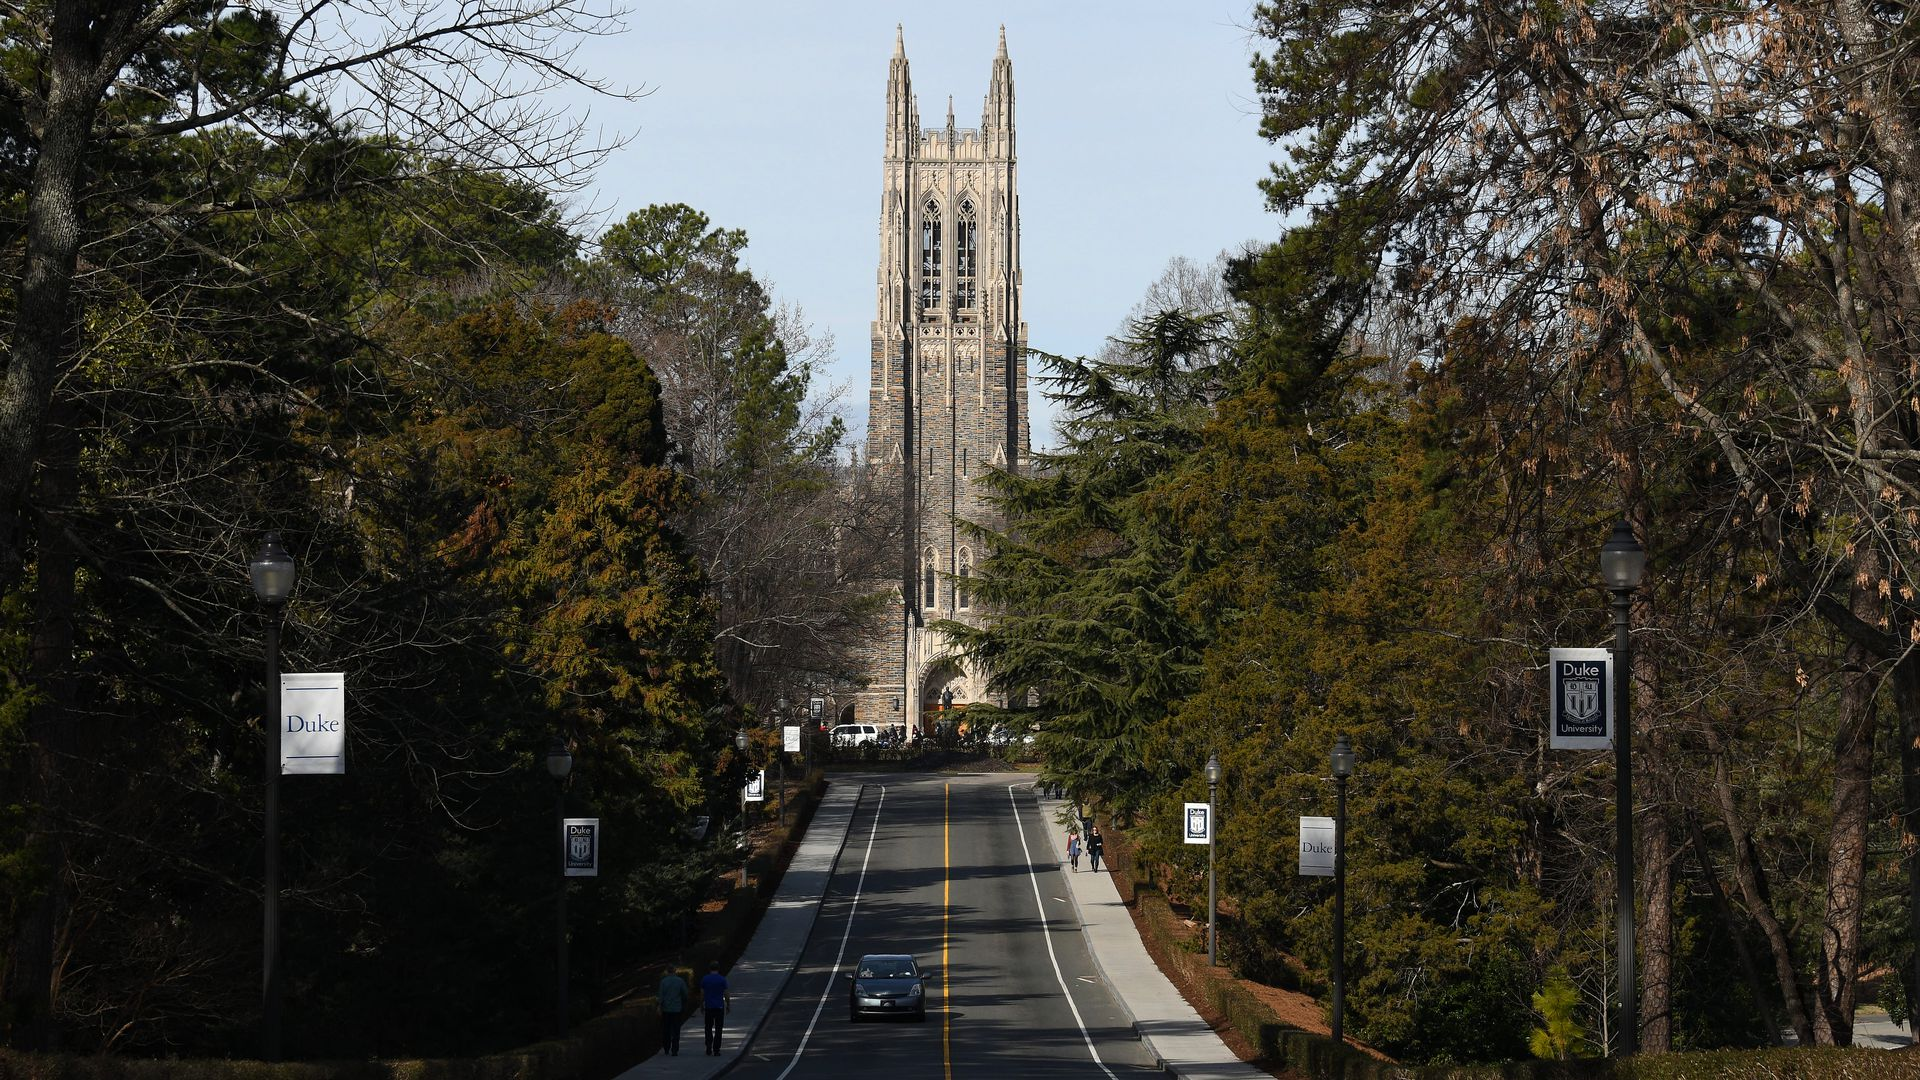 Beautiful long entrance to Duke University, with the chapel at the end